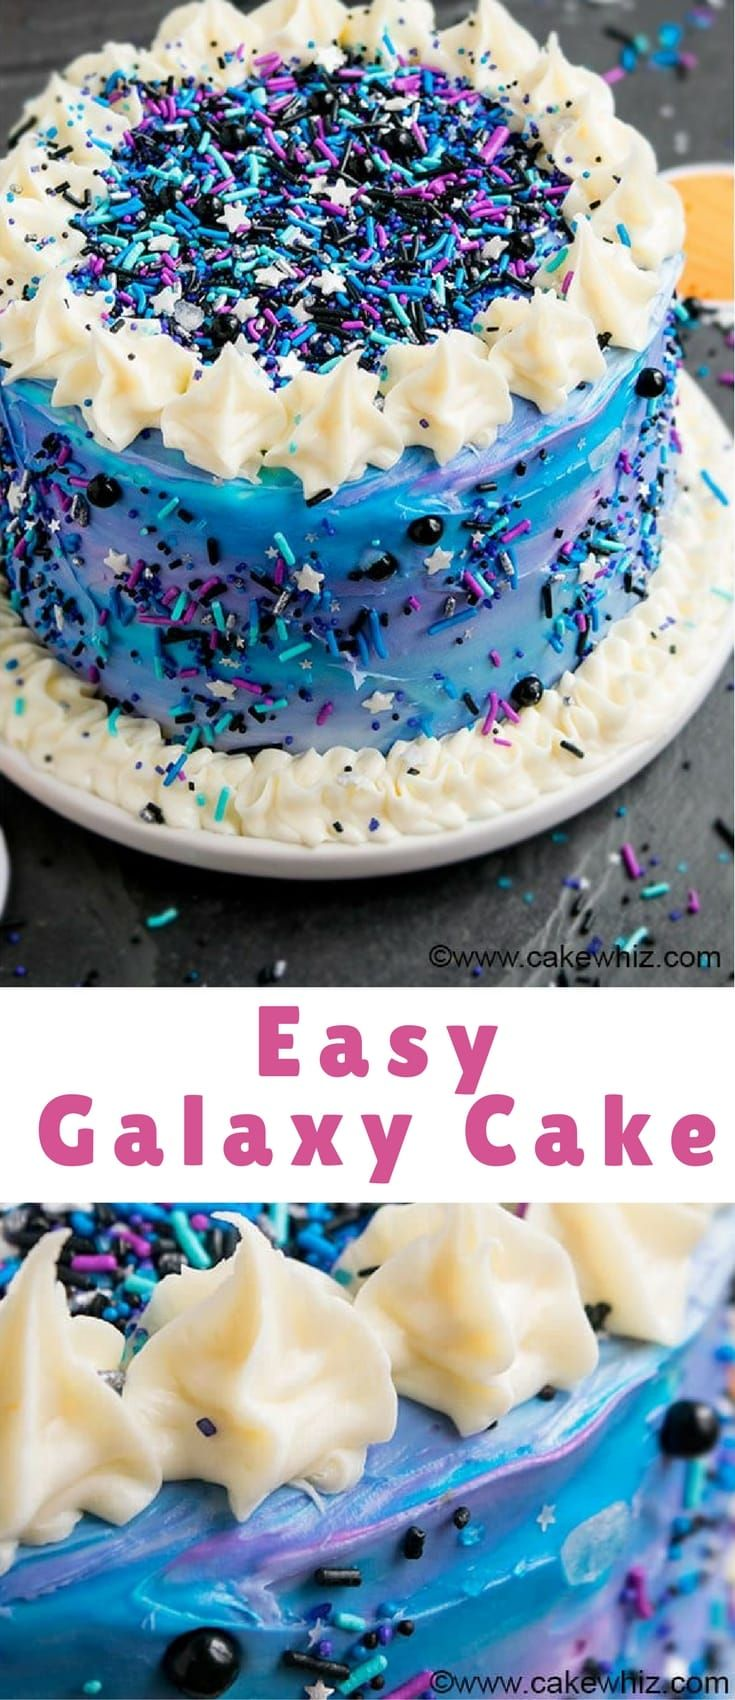 Magnificent Easy Galaxy Cake Galaxy Cake Cool Birthday Cakes Homemade Cakes Personalised Birthday Cards Veneteletsinfo